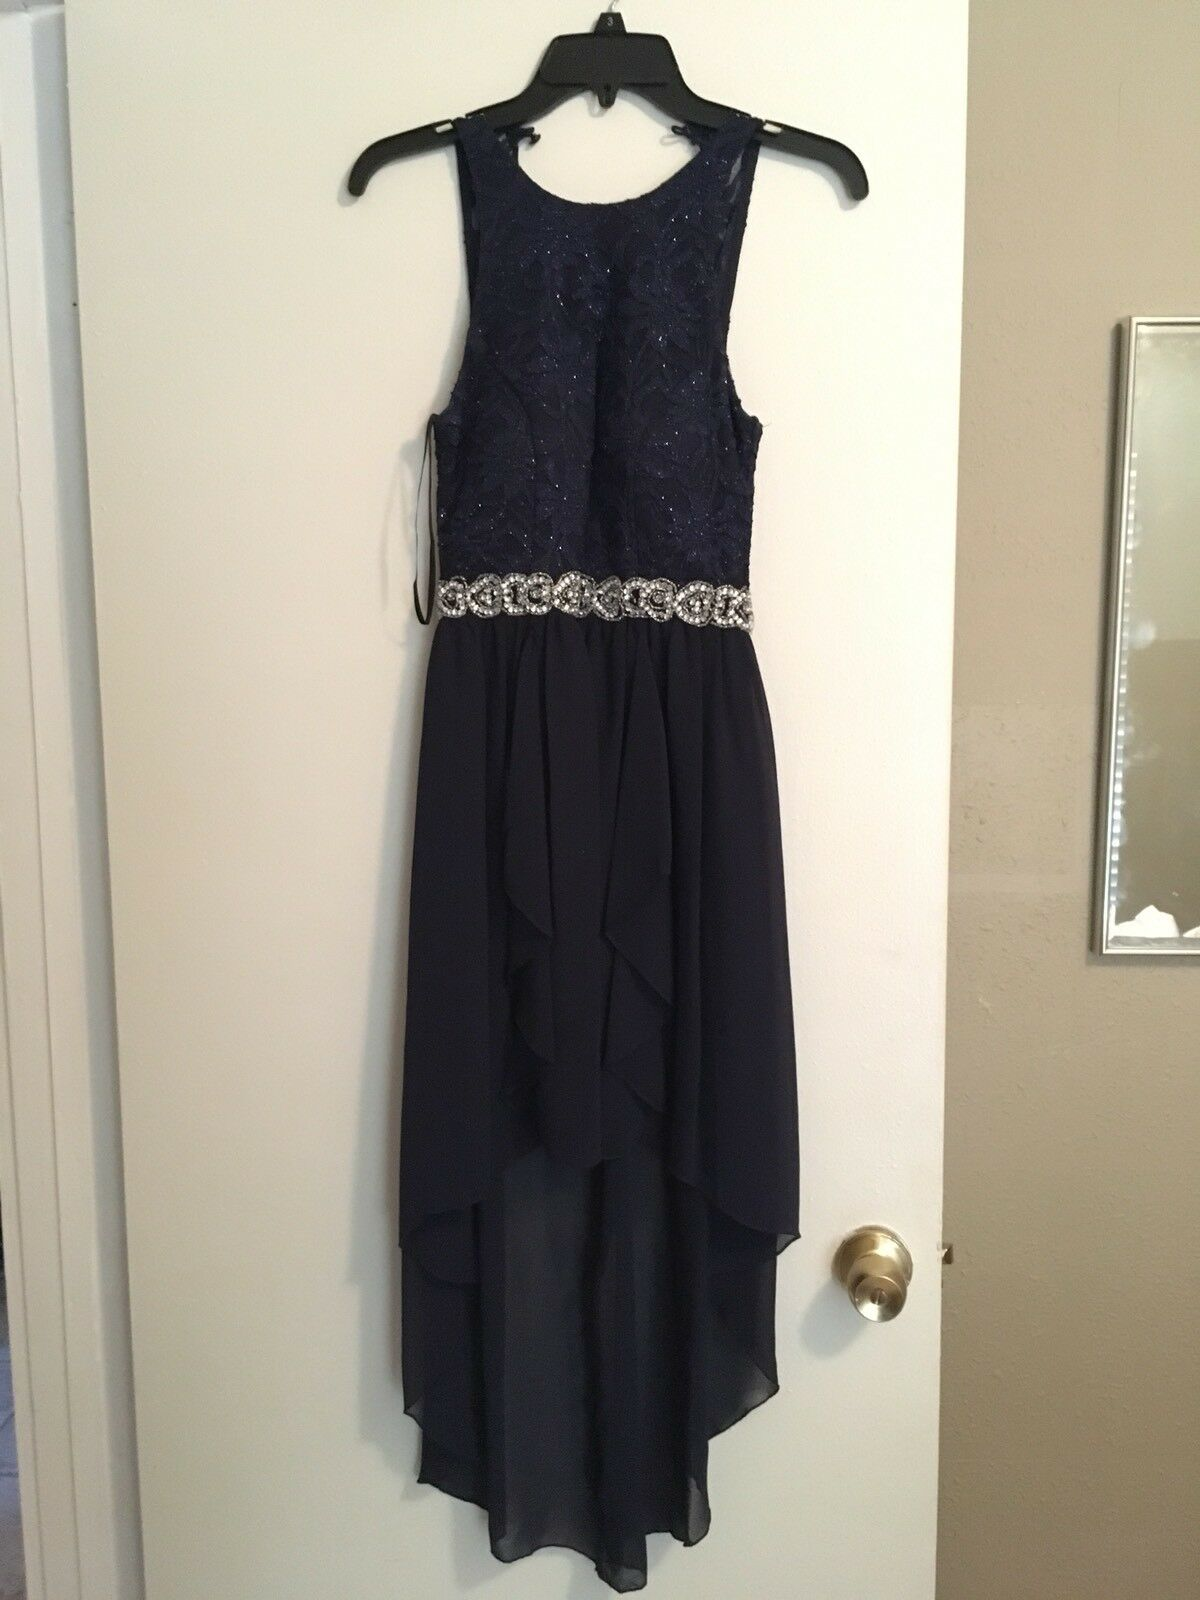 Navy High to Low Low Low Prom Dress Size 3 bc3dd8